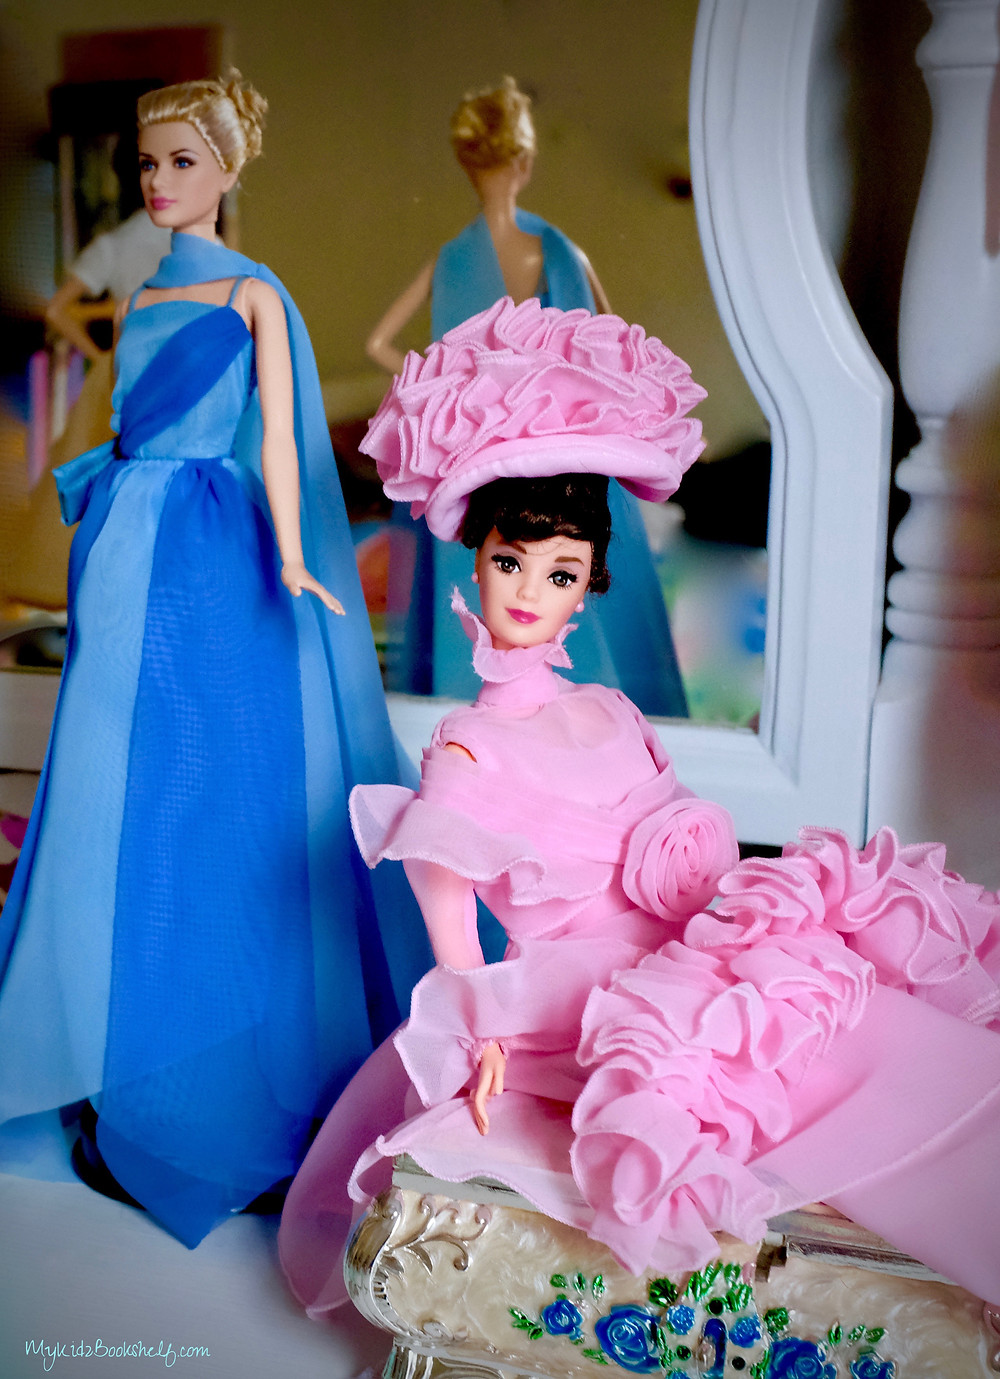 Two Barbie dolls by Mattel special one of Grace Kelly Barbie from the movie 'To Catch a Thief' and the other of Audrey Hepburn Barbie dressed up from My Fair Lady